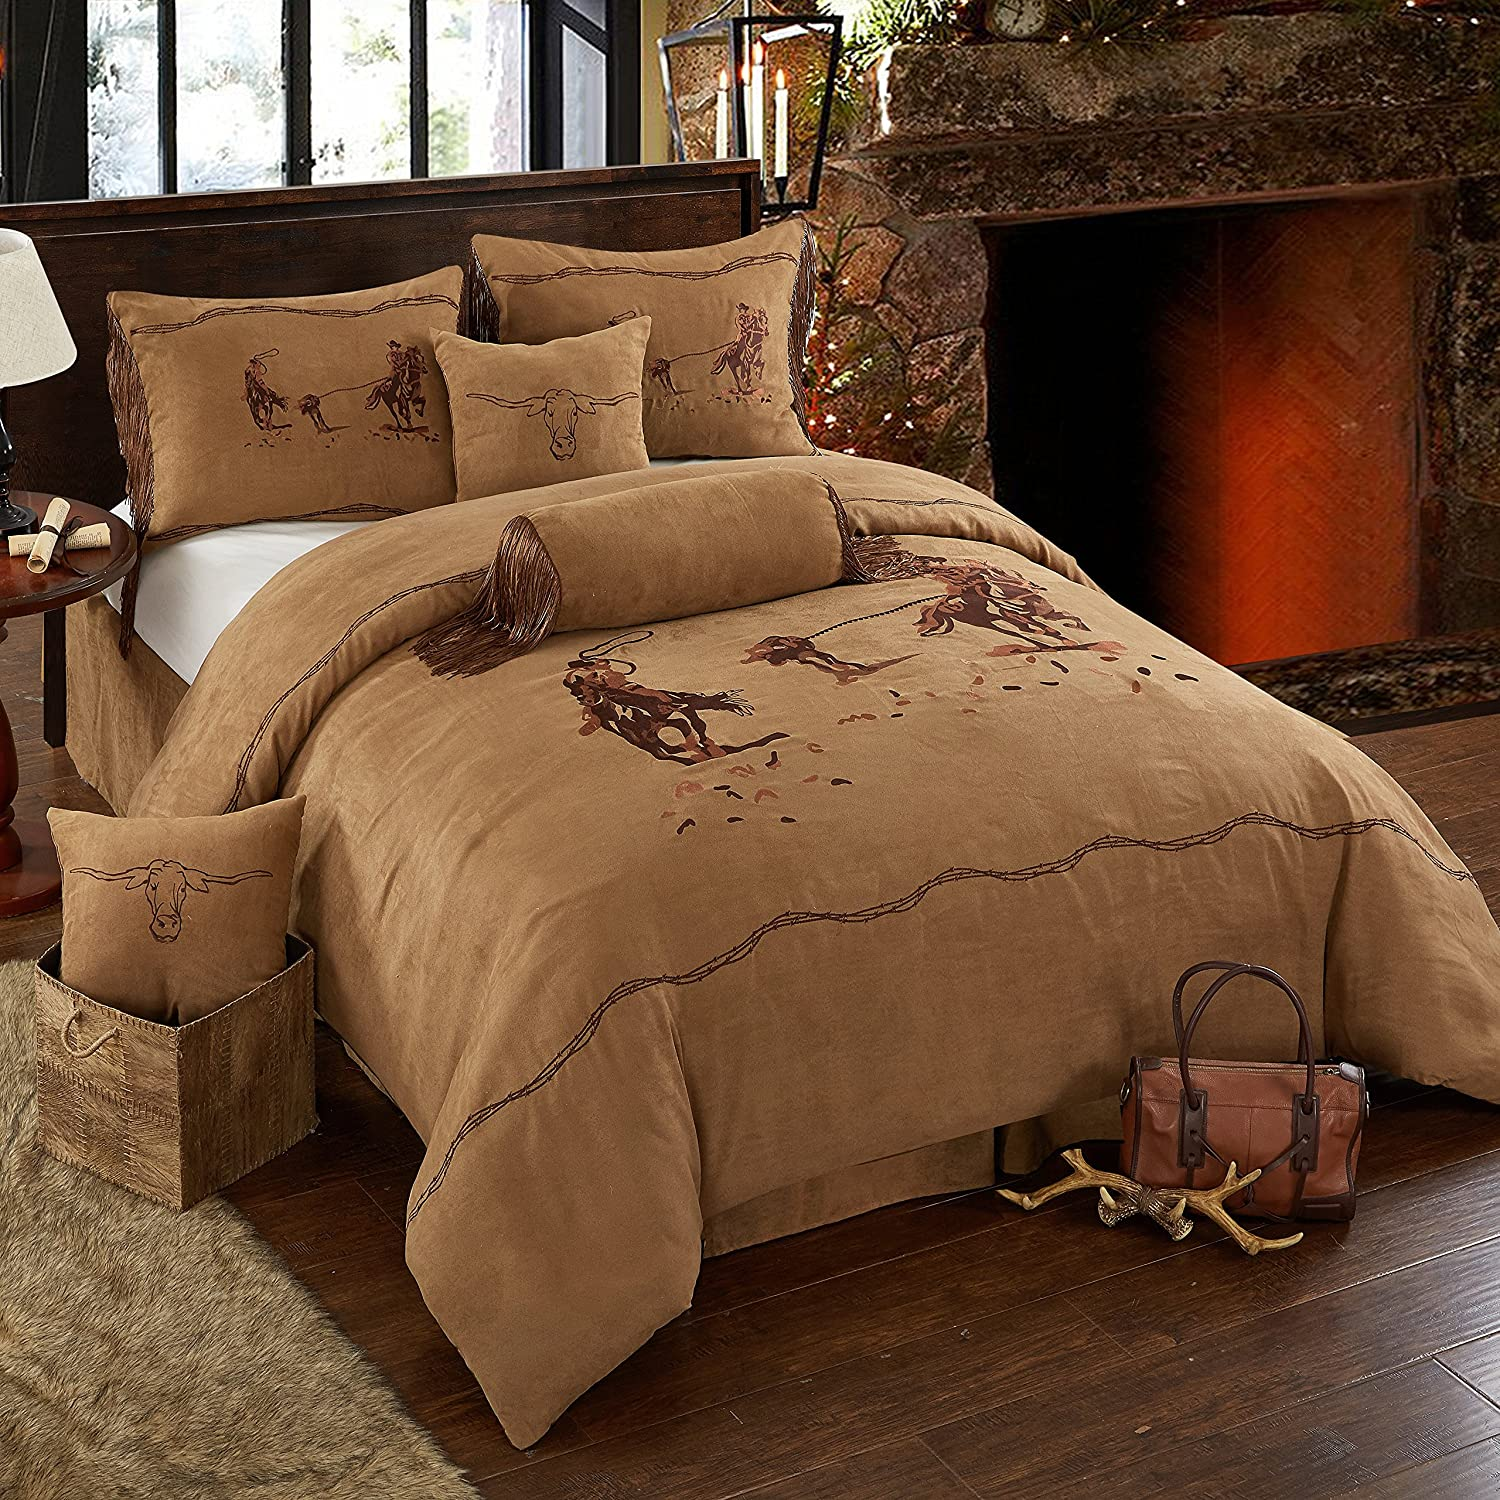 Beautiful Luxury Rustic Embroidery Cowboy Horse Rider With Barbed Wire Border Western Cabin Style Lodge Oversize Micro Suede Comforter Set in Brown Bedding With Decorative Pillows (King)